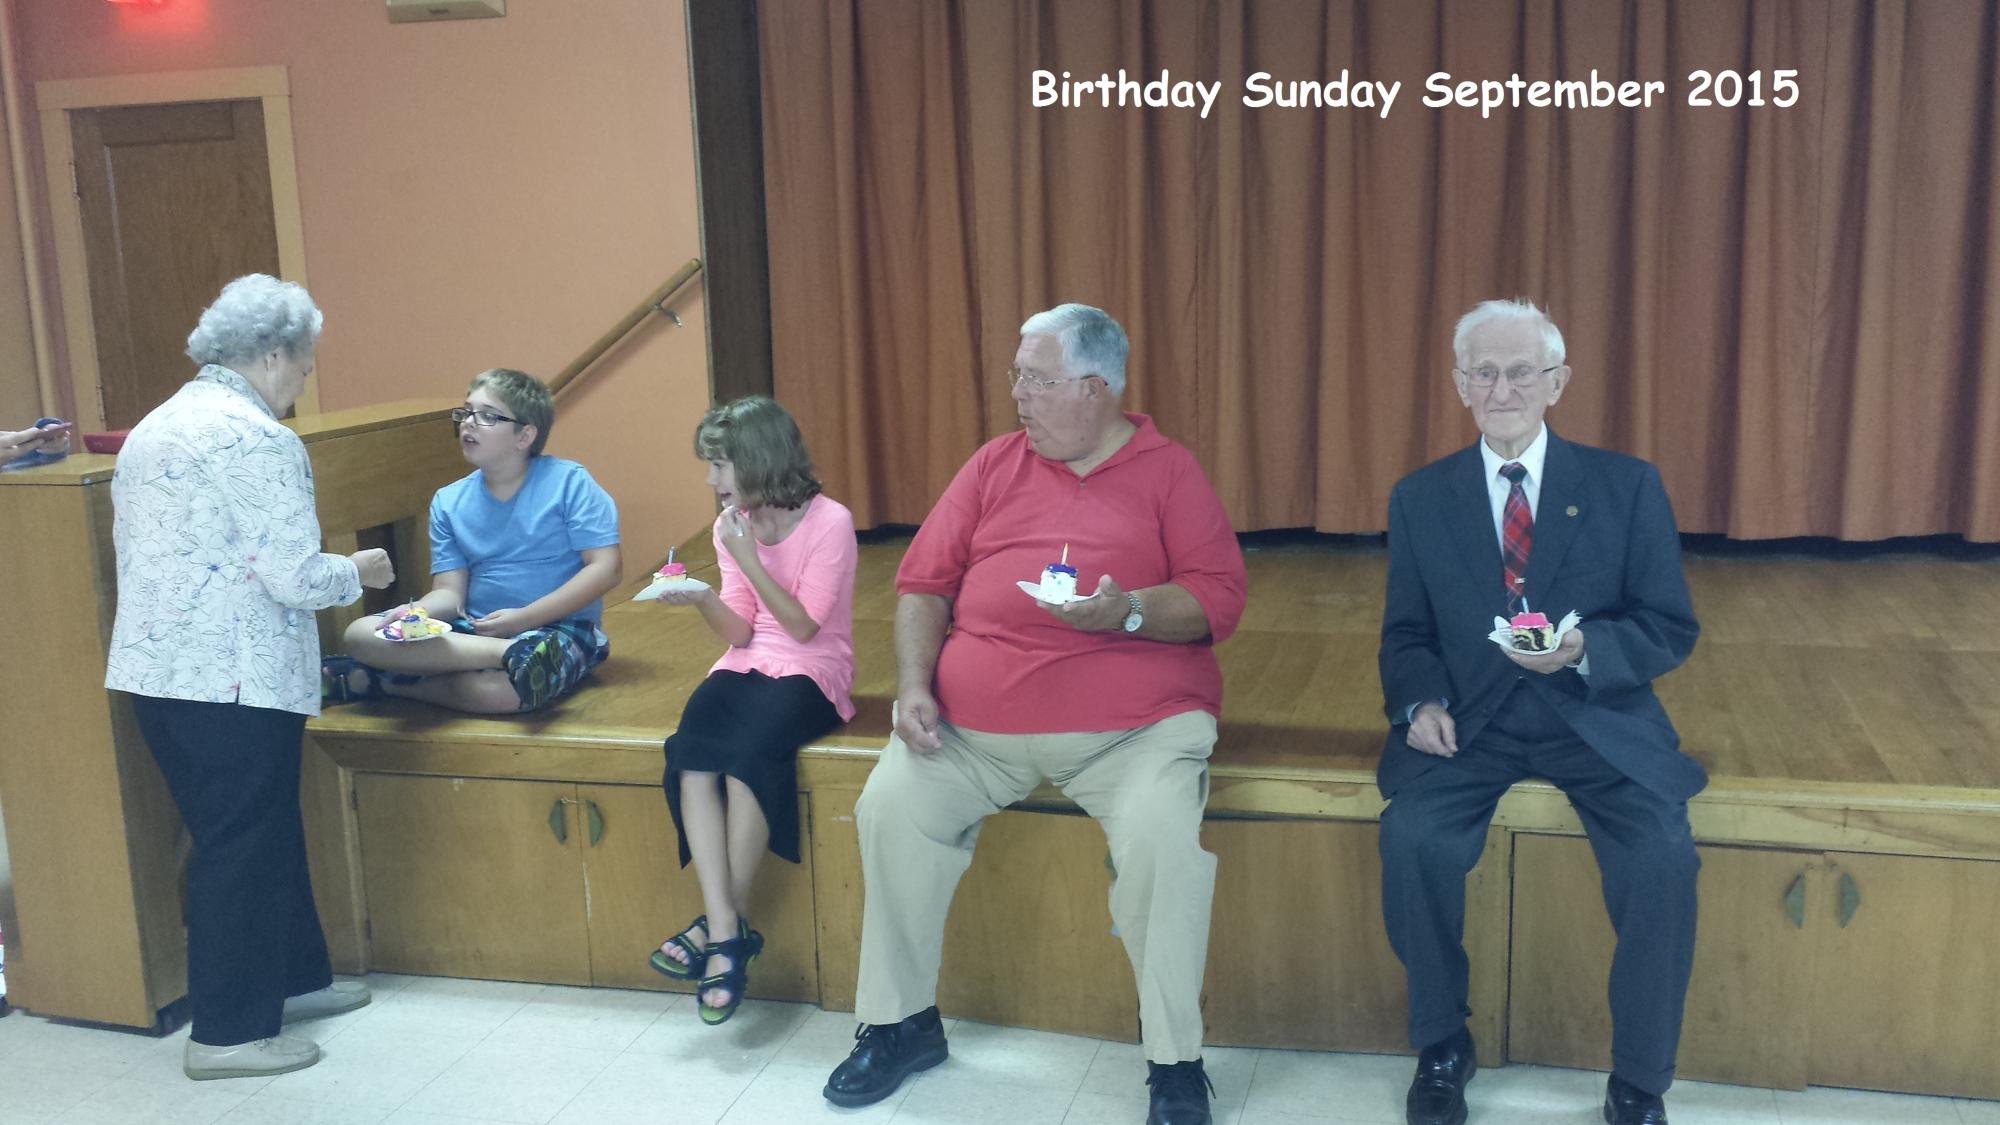 Birthday Sunday September 2015